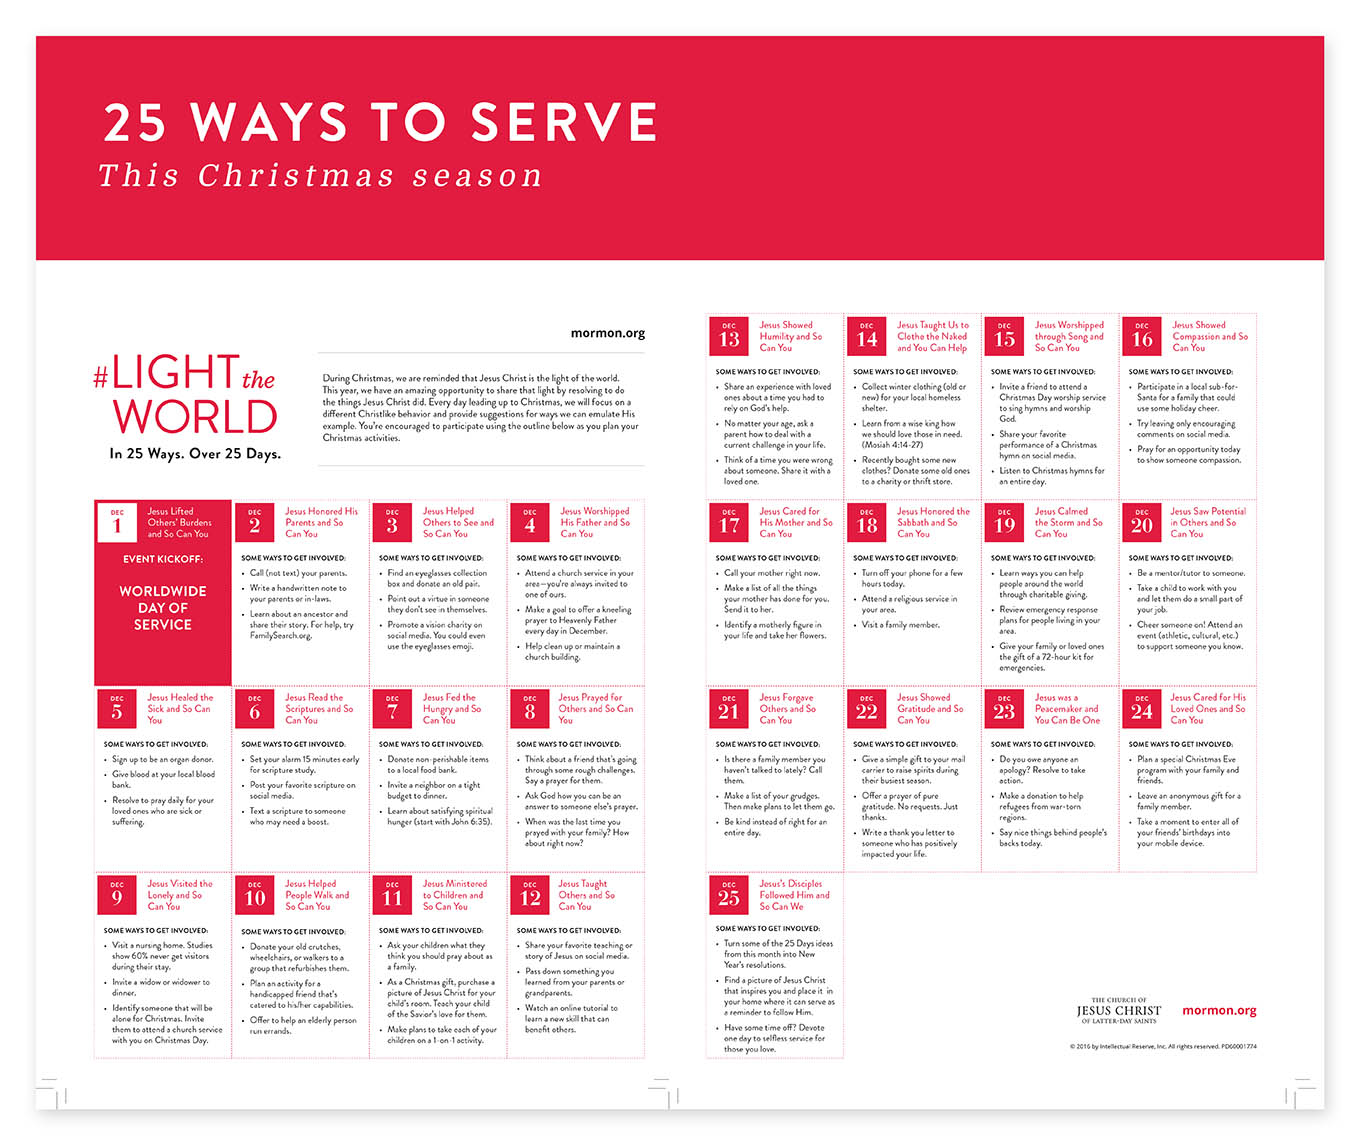 The holidays never feel warmer or more satisfying than when we're giving of ourselves. Join myself and thousands of others as we #LighttheWorld with 25 simple ways to Serve this Christmas Season.